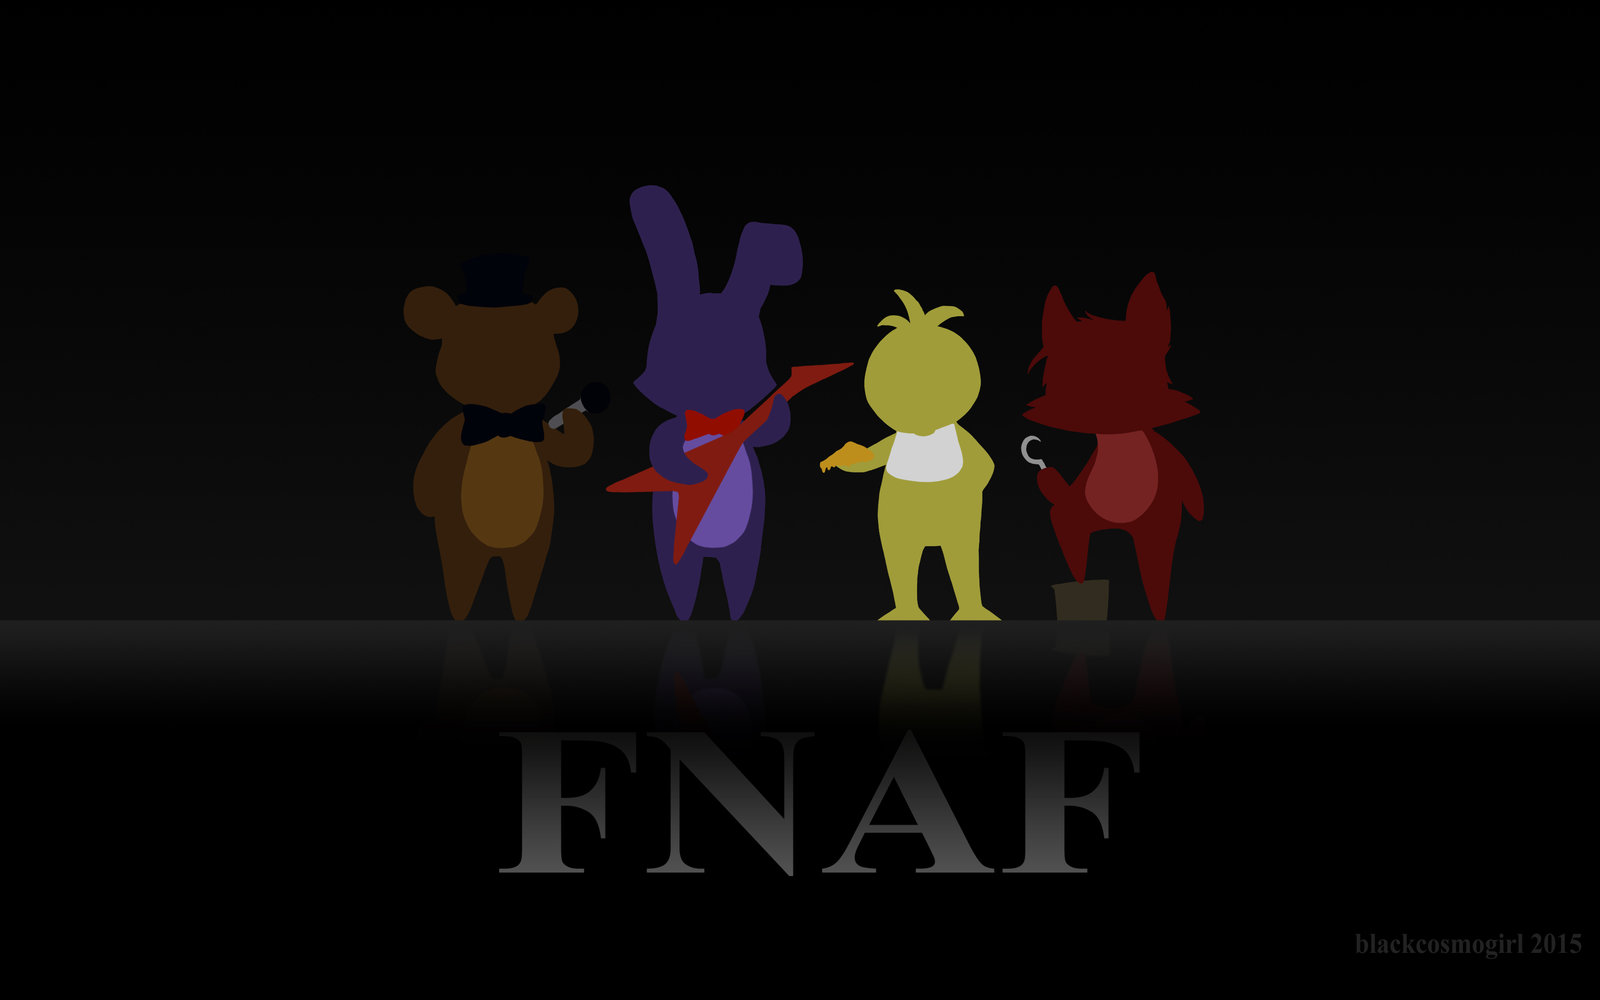 FNAF wallpaper 1680 x 1050 by blackcosmogirl 1600x1000